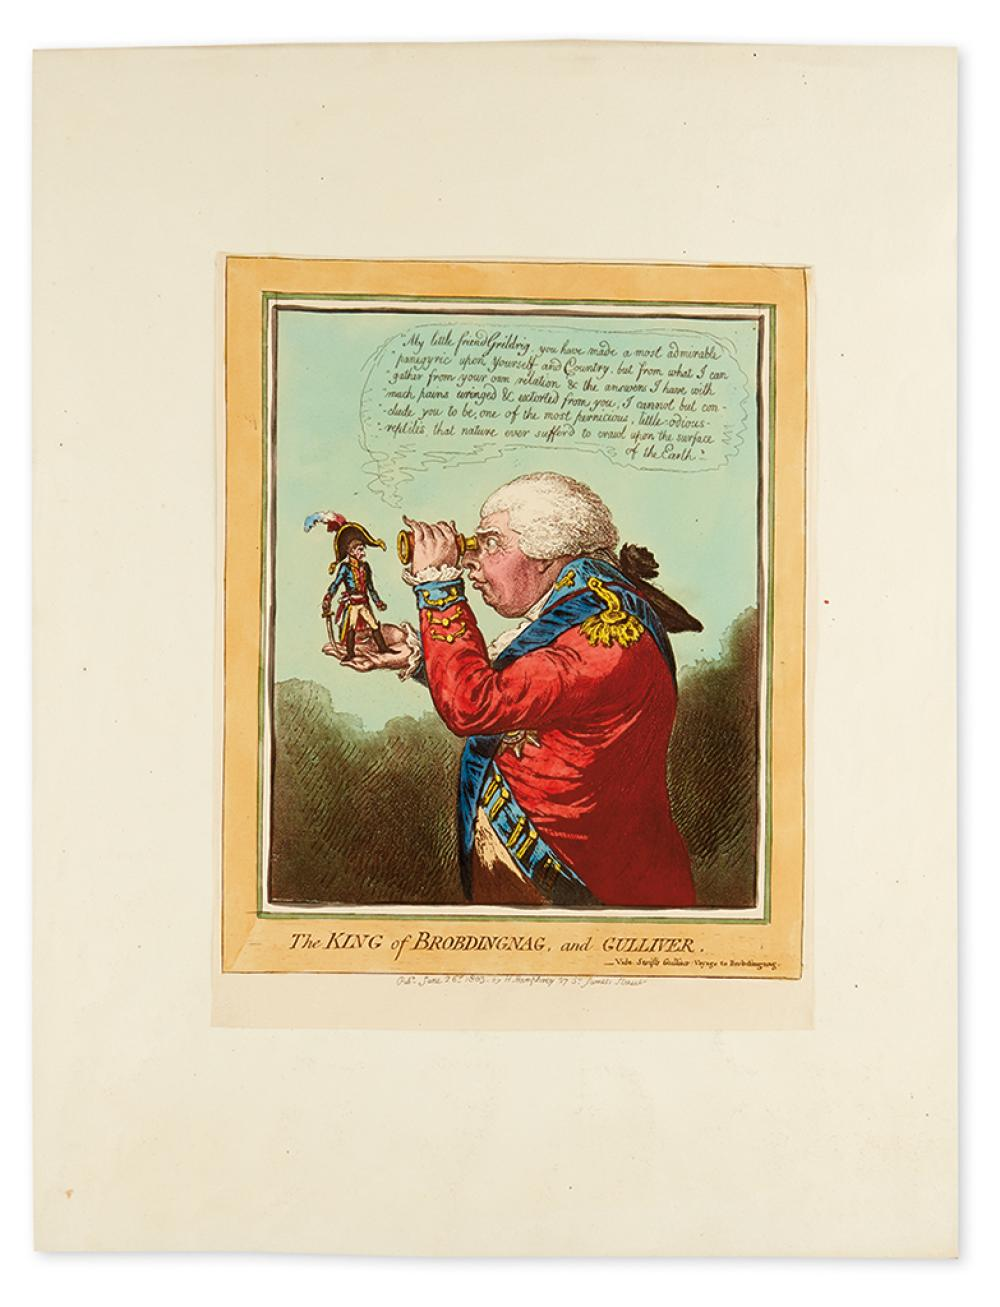 GILLRAY, JAMES. The King of Brobdingnag, and Gulliver.